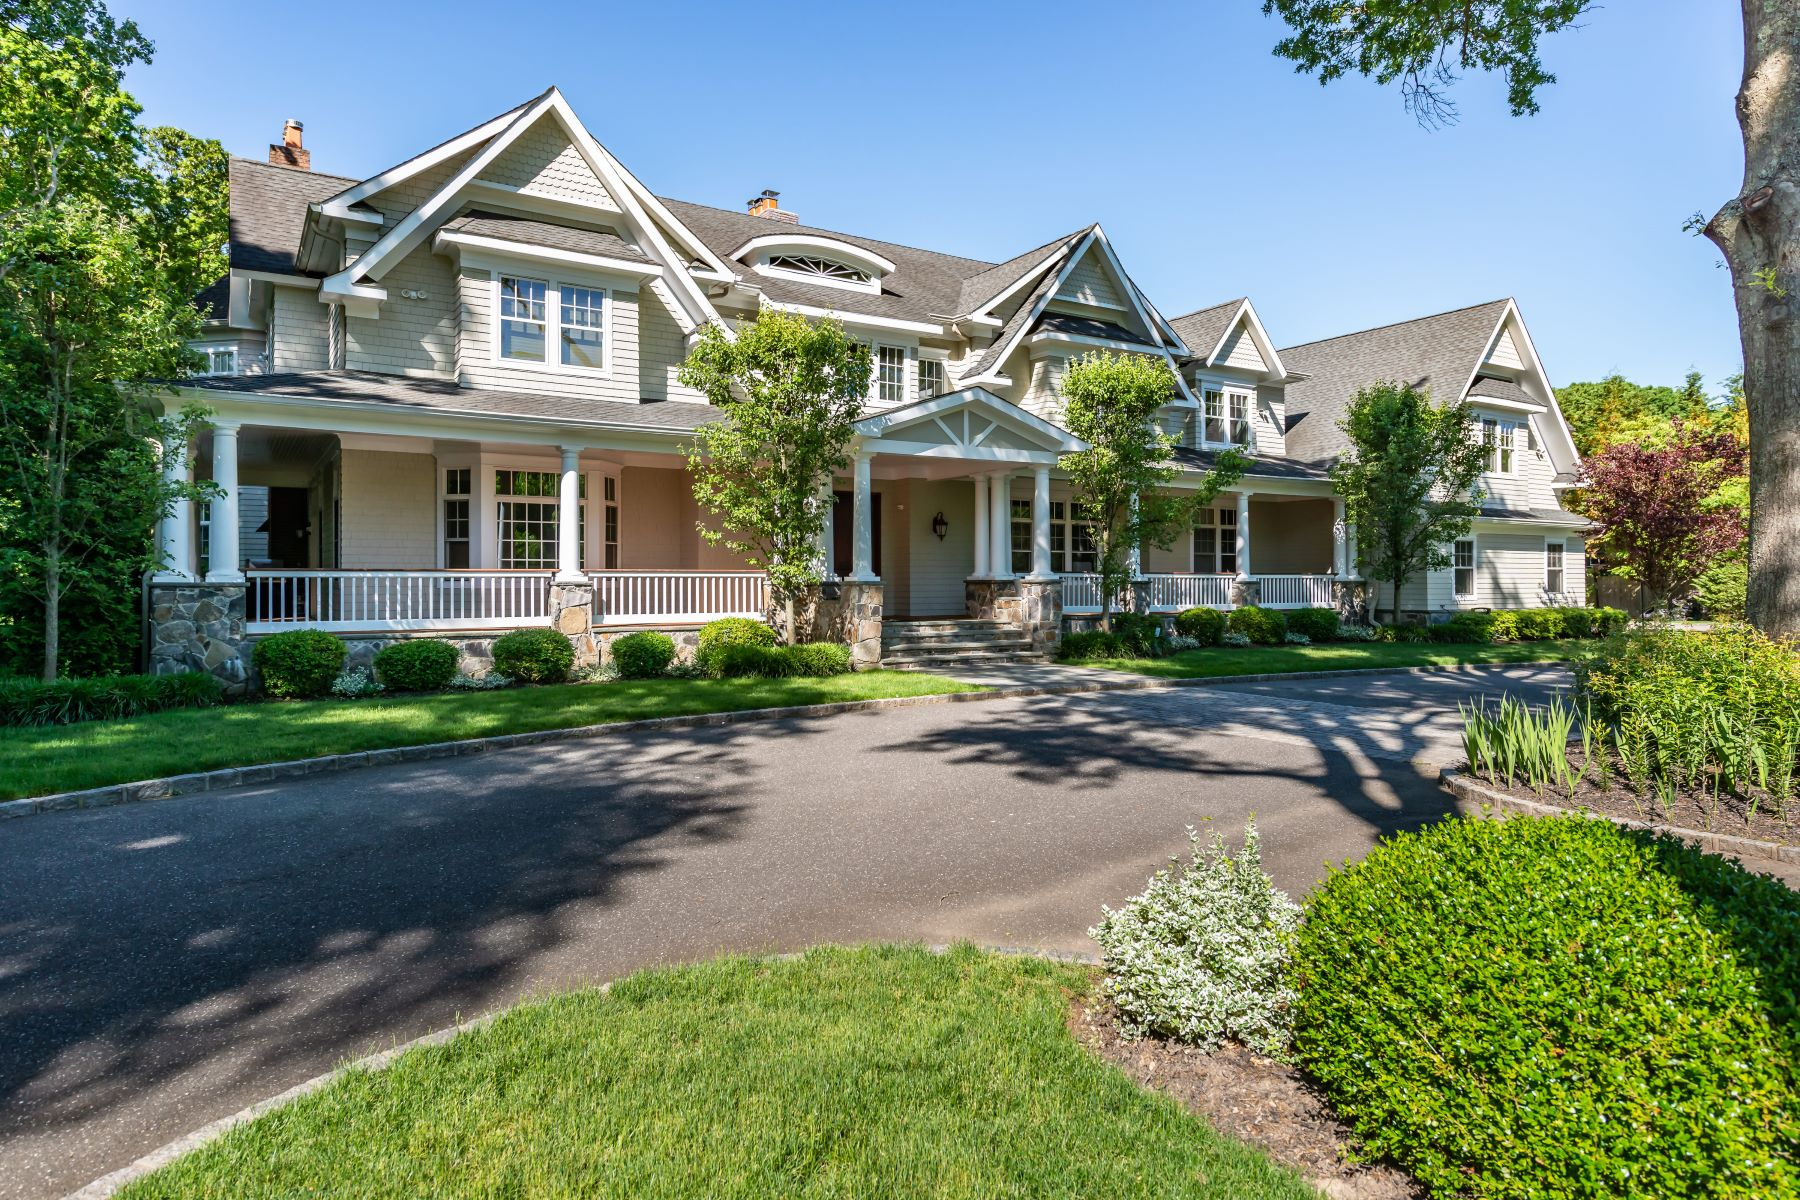 Single Family Homes for Sale at Muttontown 543 Hunter Lane Muttontown, New York 11771 United States